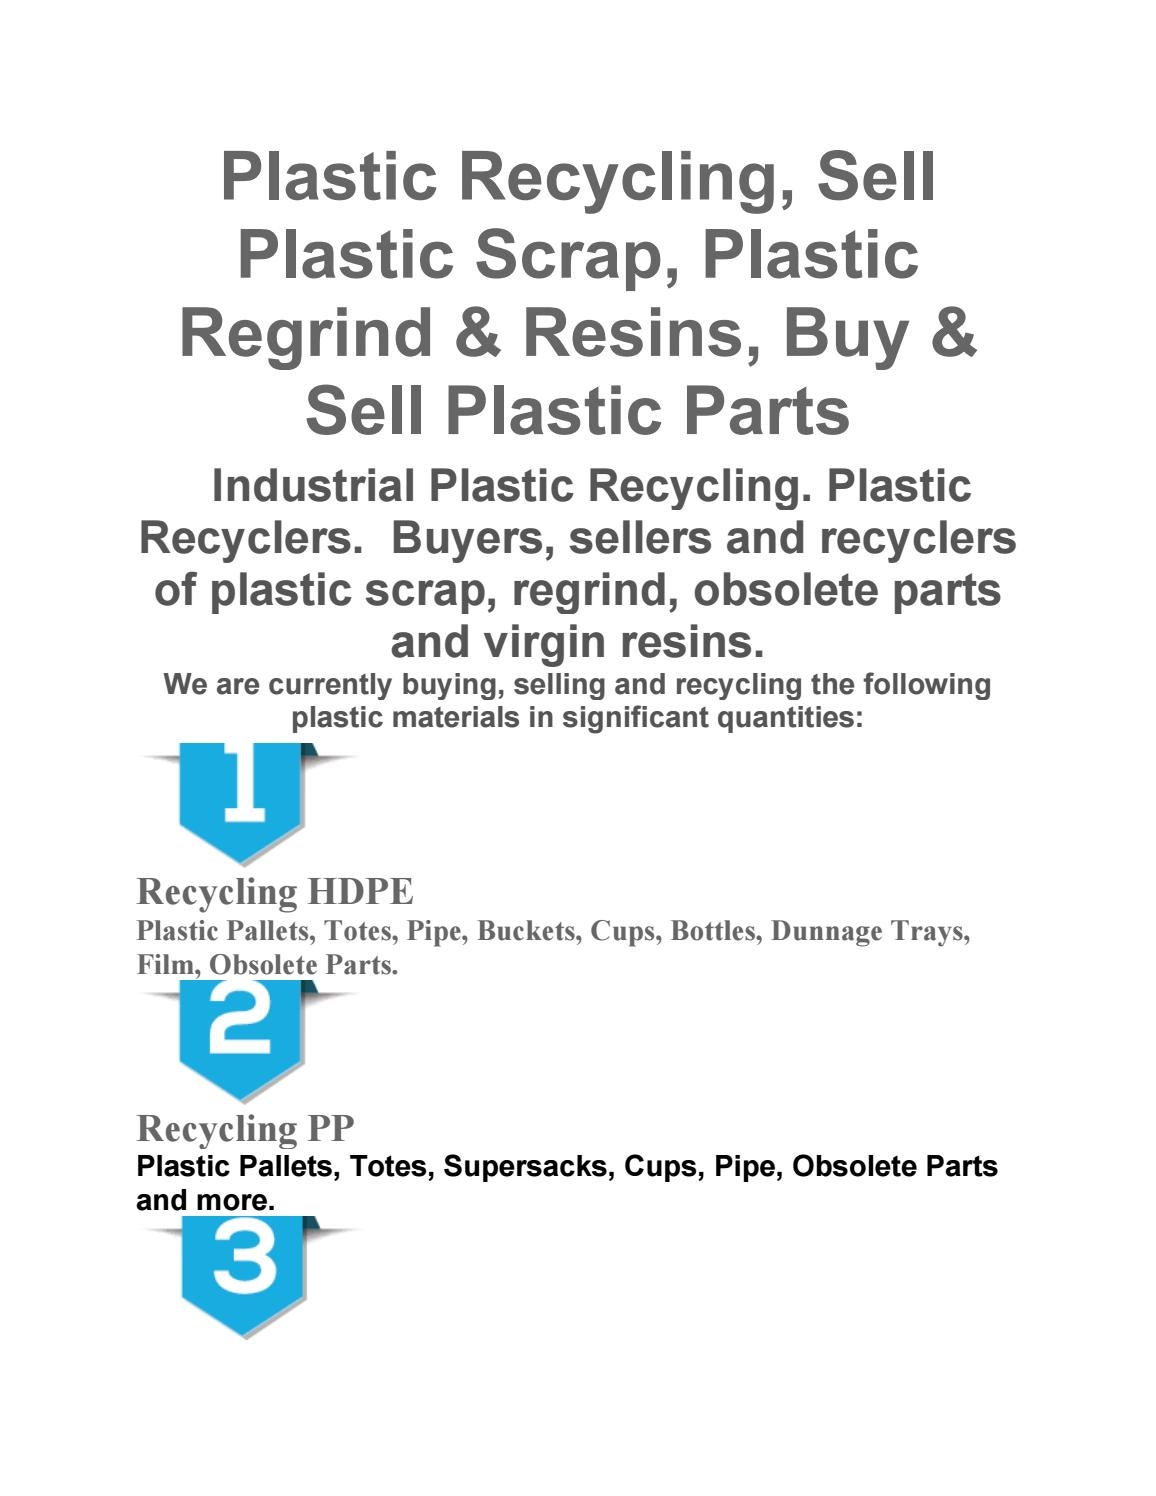 Plastic recycling by Mike Halwits - issuu